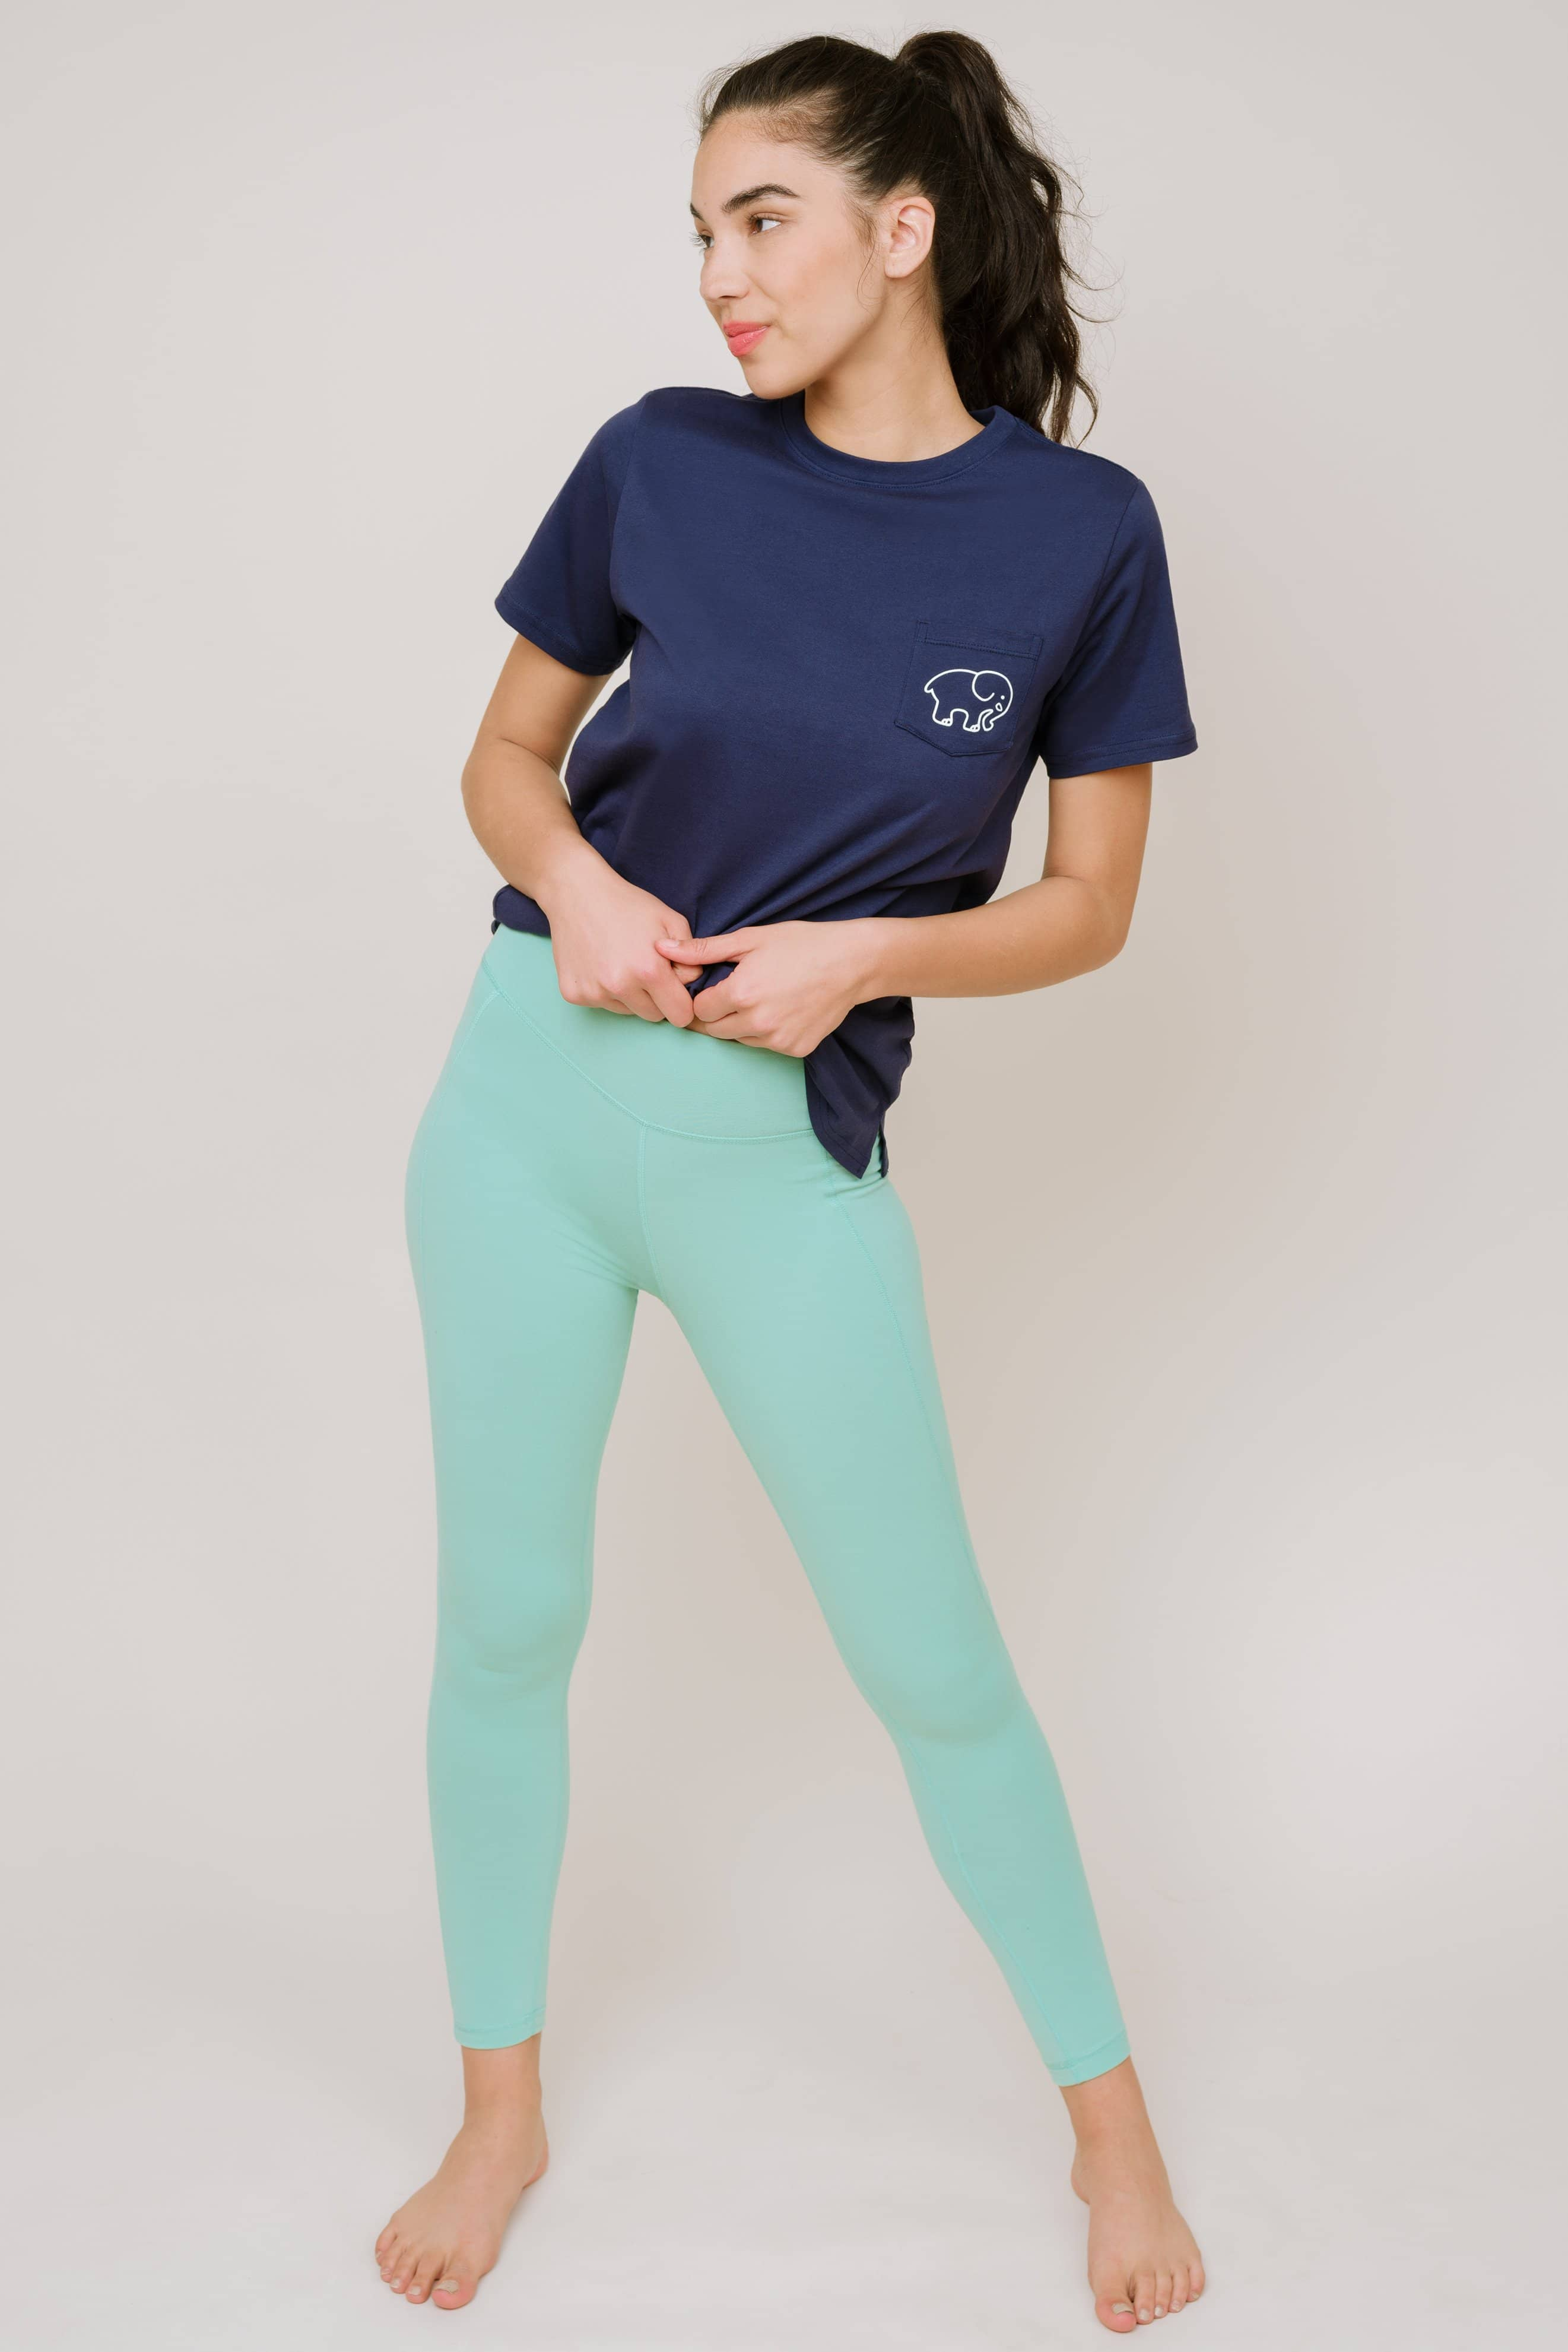 High Waist Legging 28""